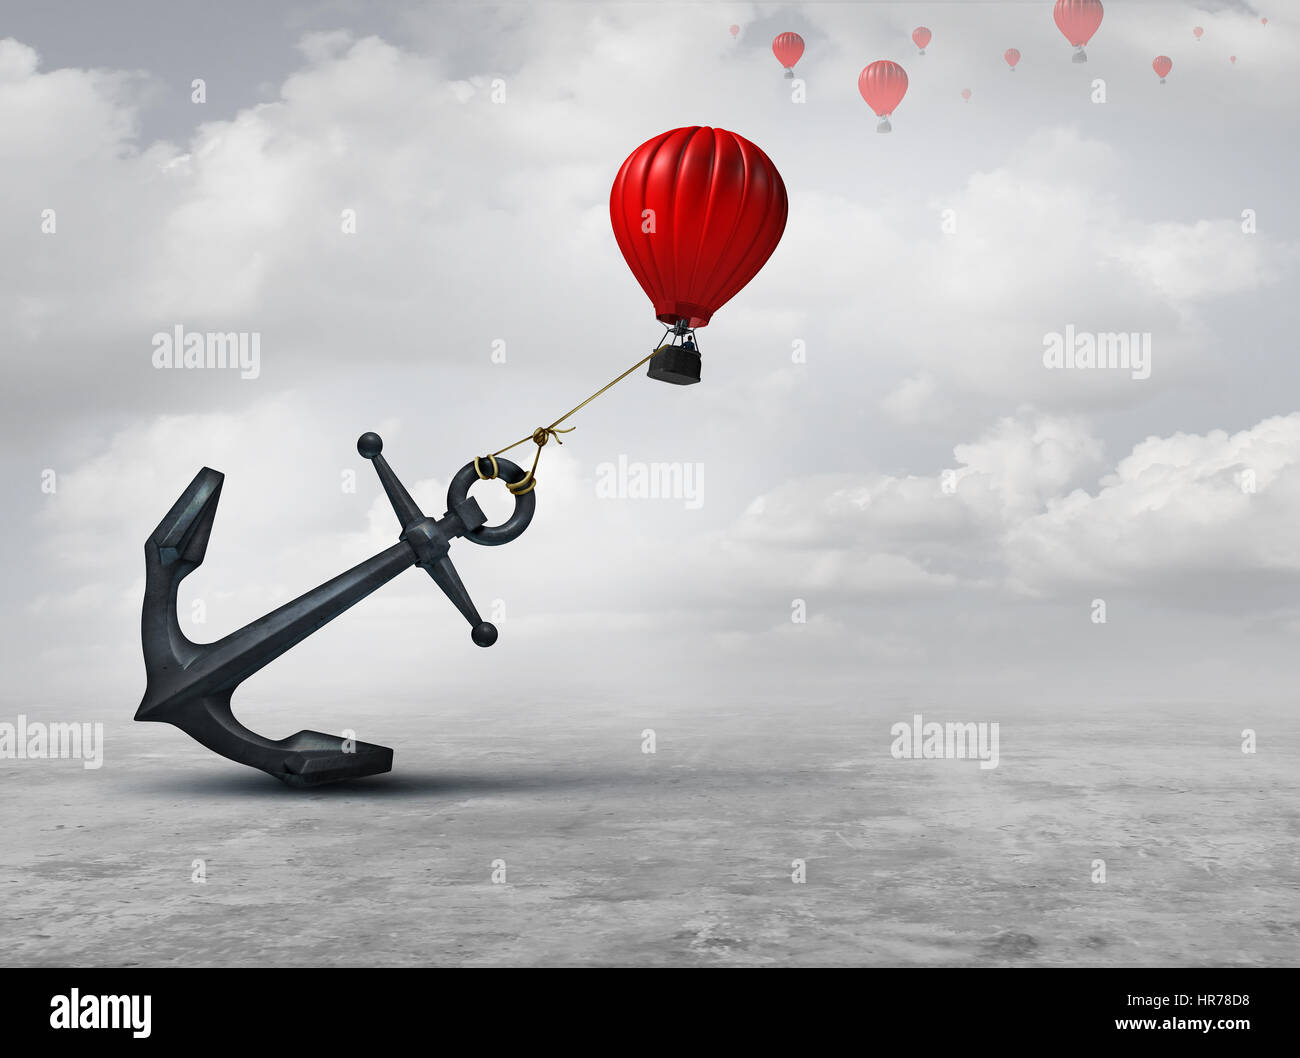 Held back metaphor as a large anchor holding or oppressing an air balloon and restricting movement as a suppression - Stock Image